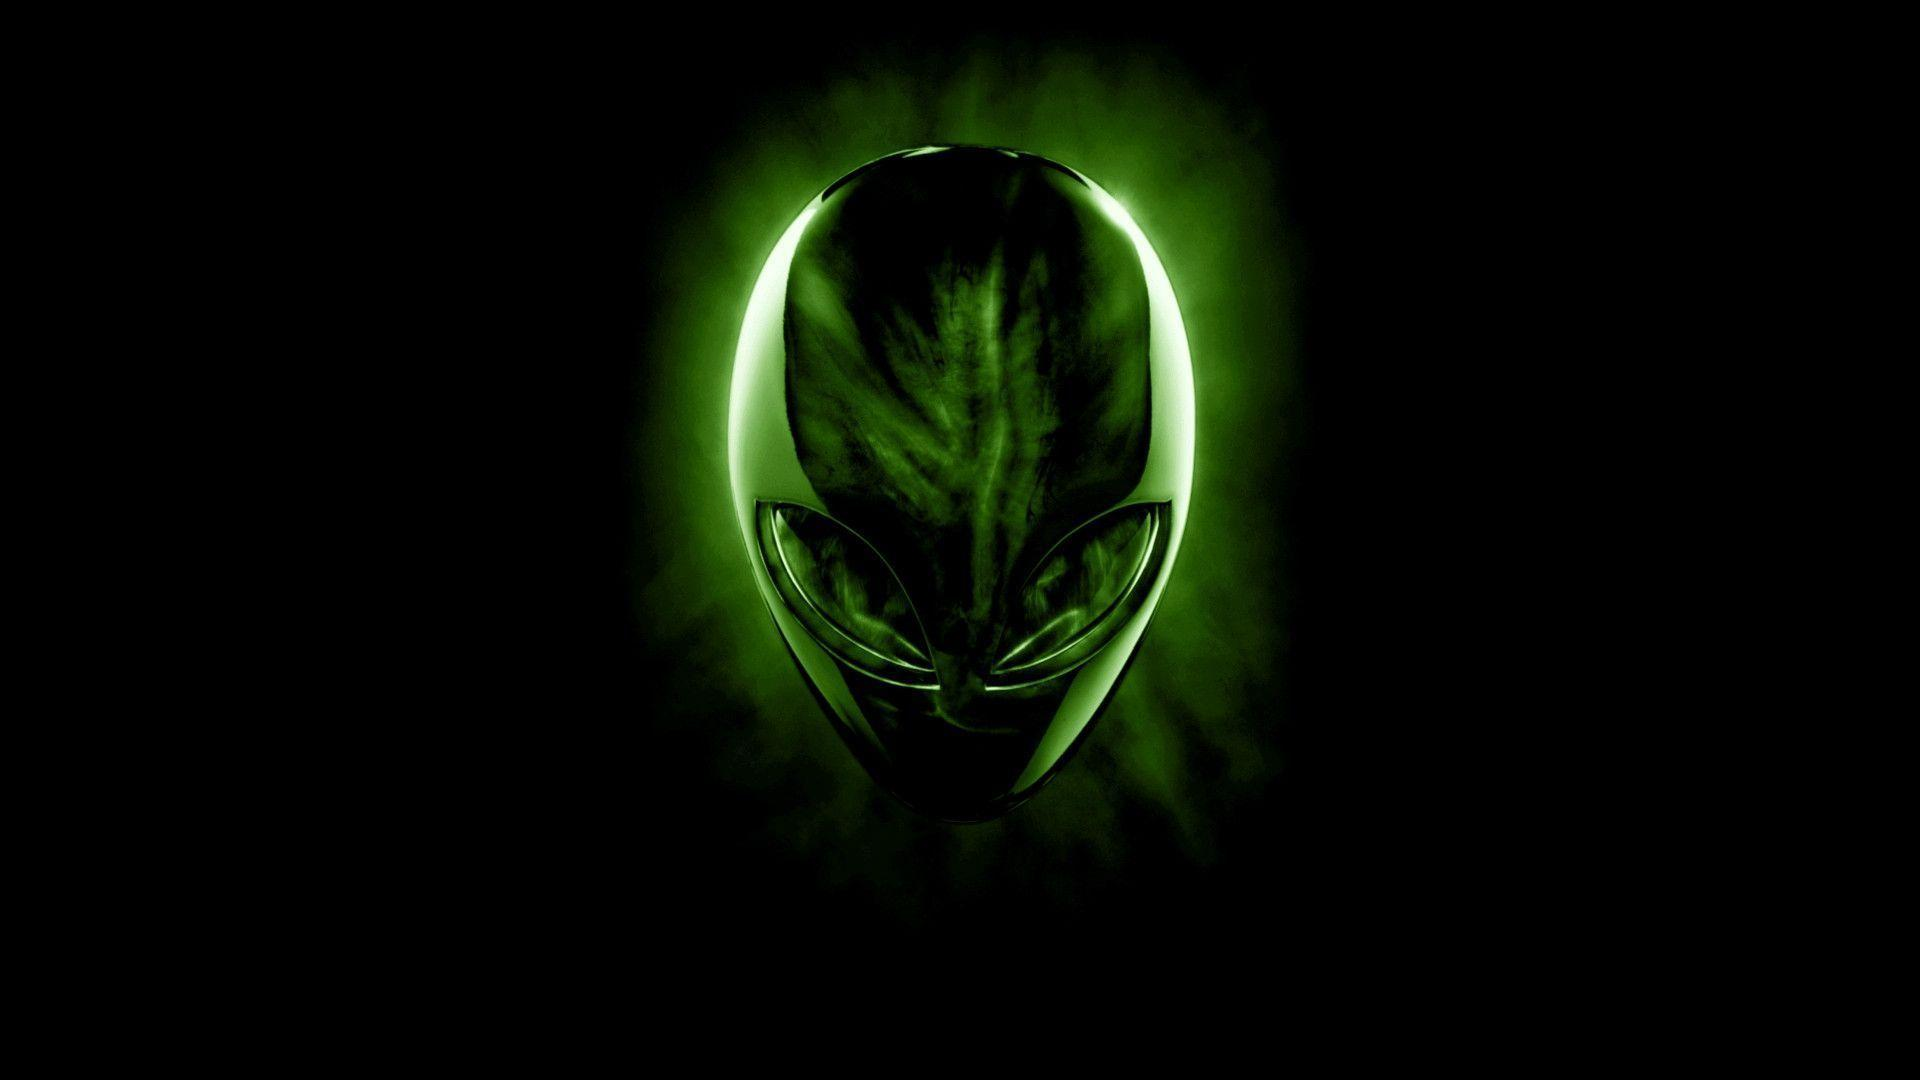 alienware wallpaper green hd - photo #1